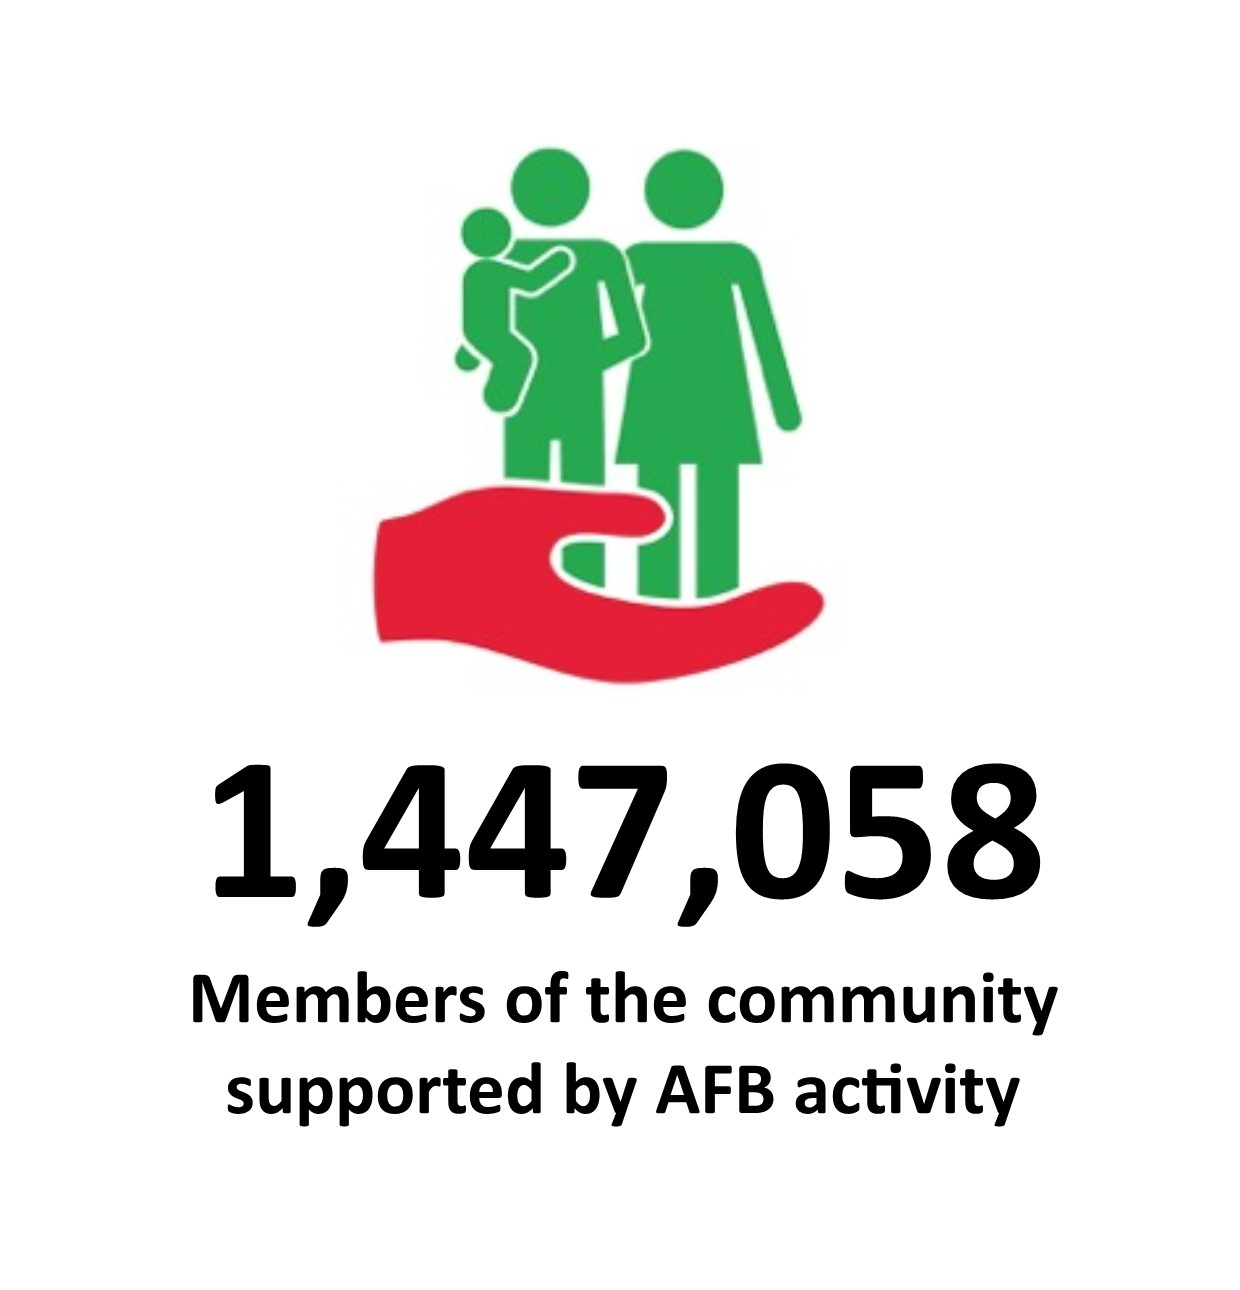 Members_of_the_community_supported_by_AFB_activity